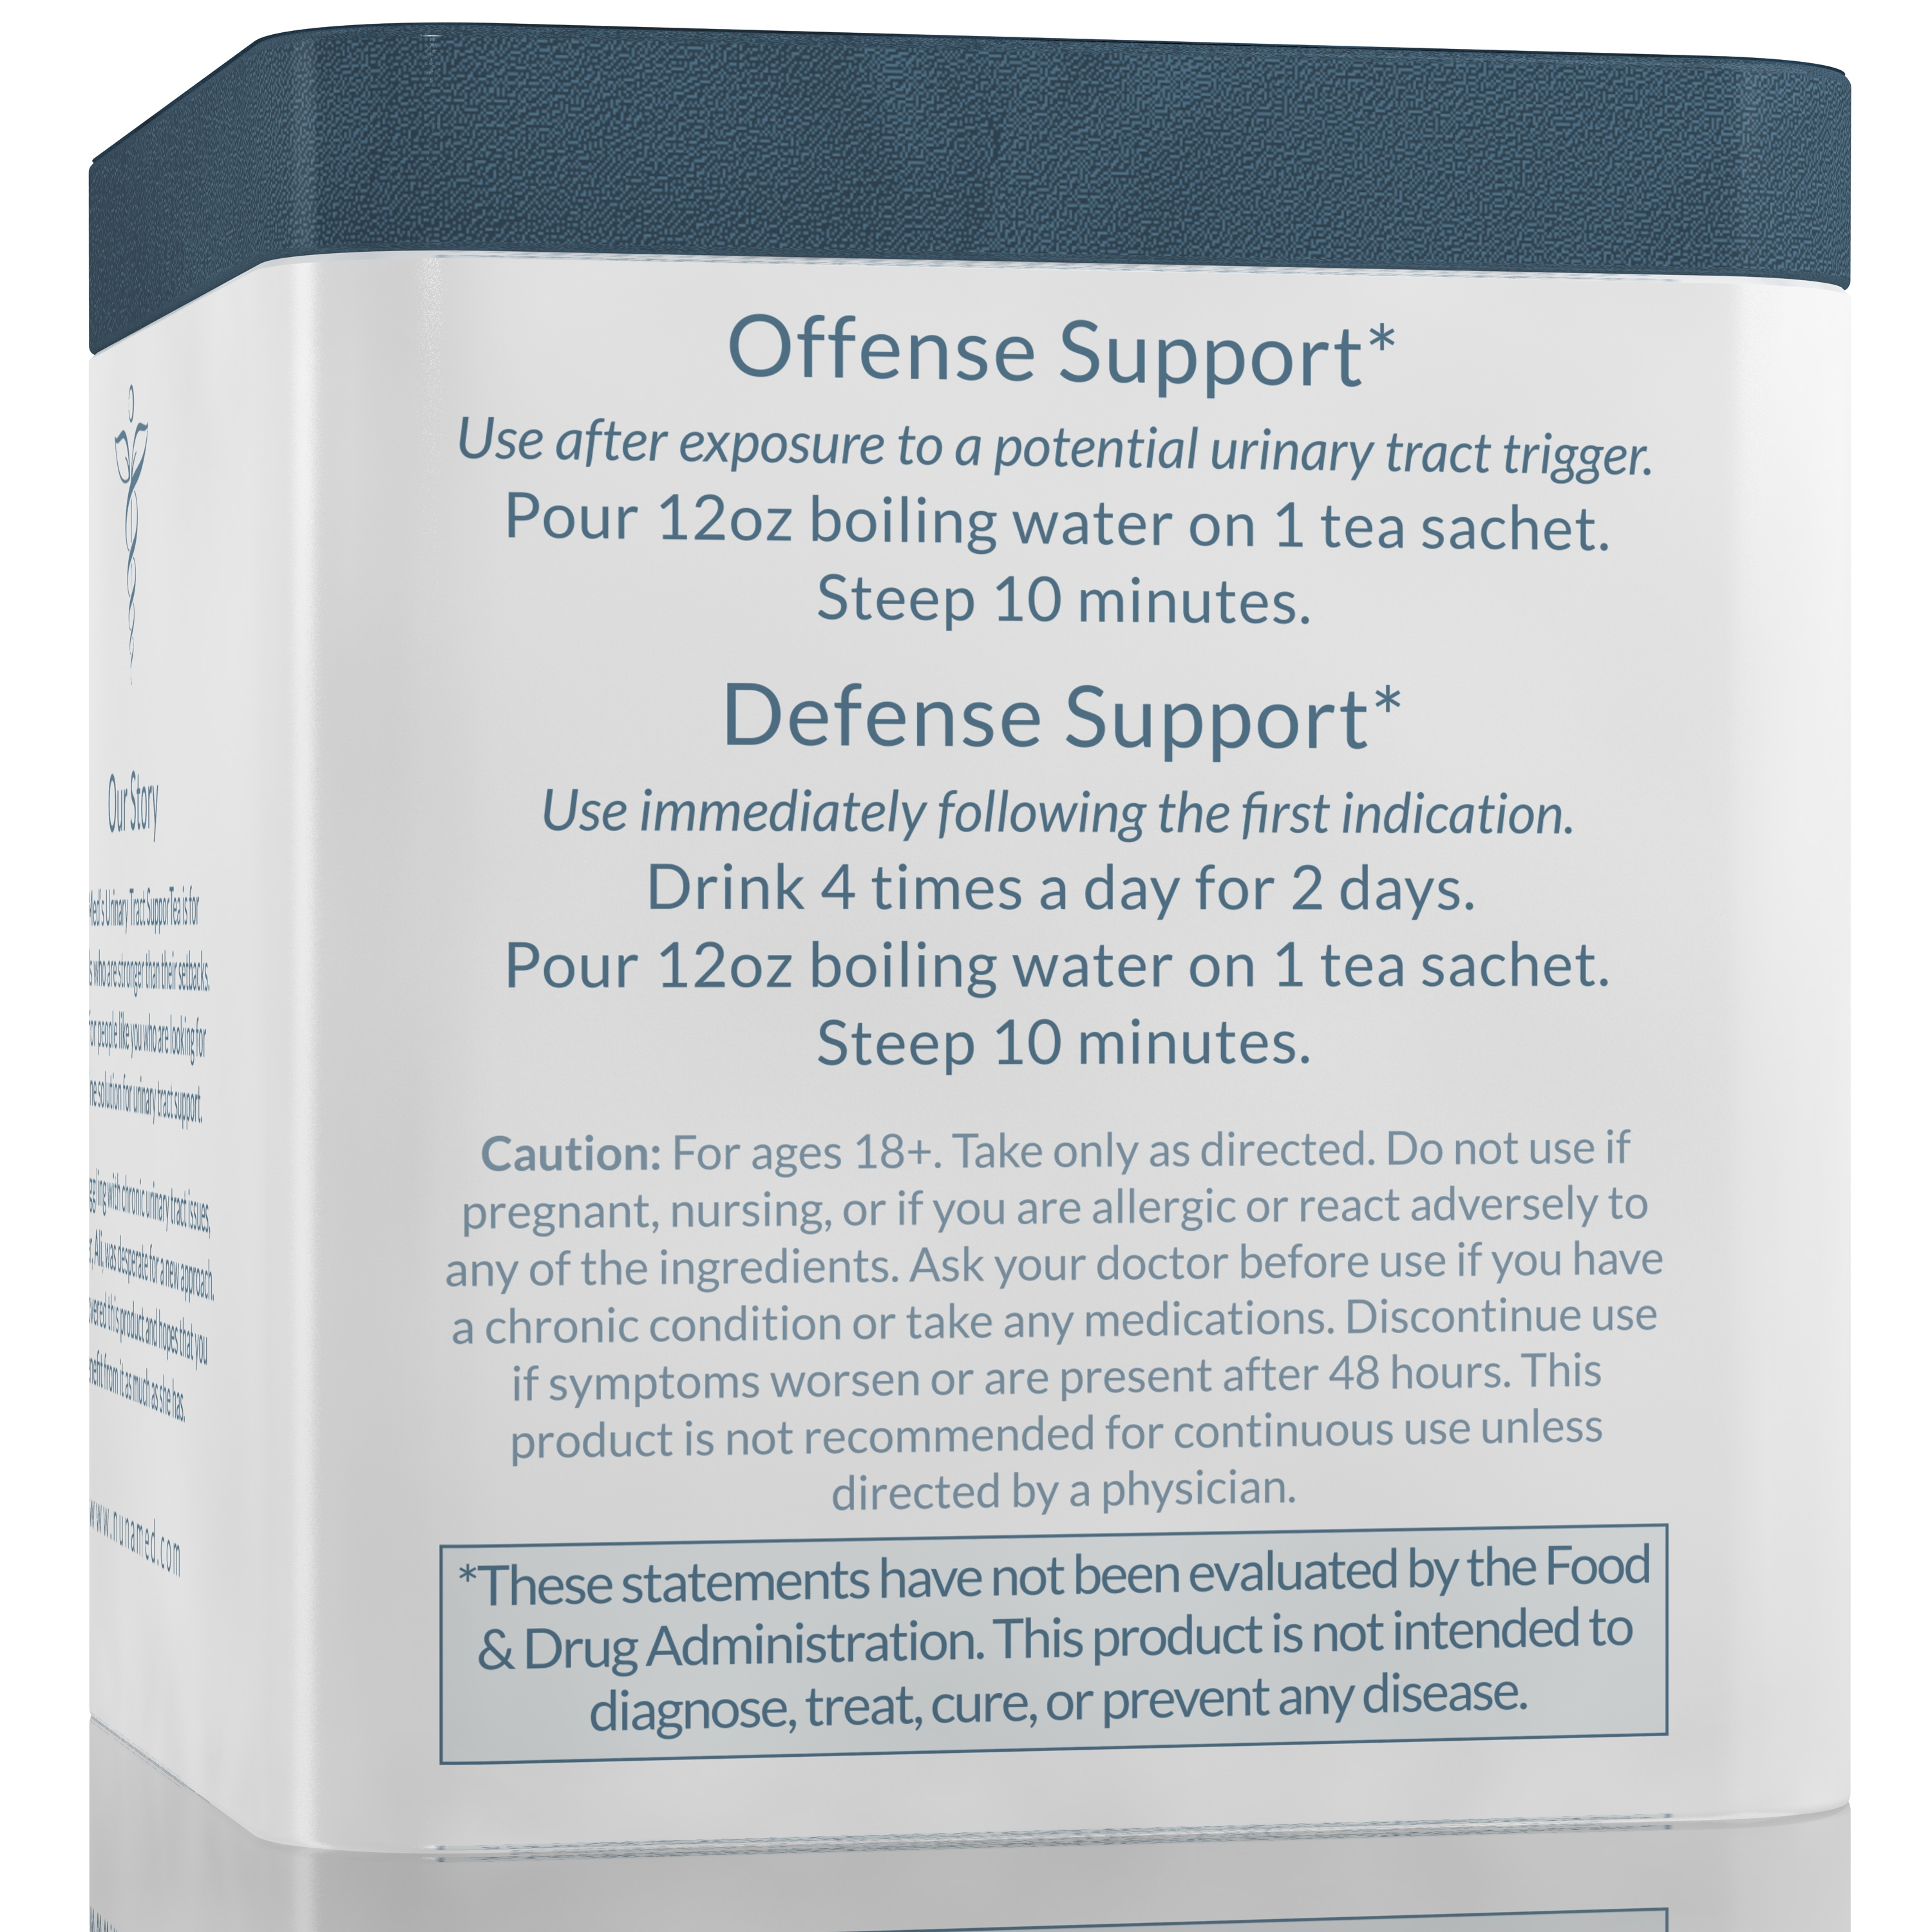 Urinary Tract SupporTea - Offense Support & Defense Support Directions